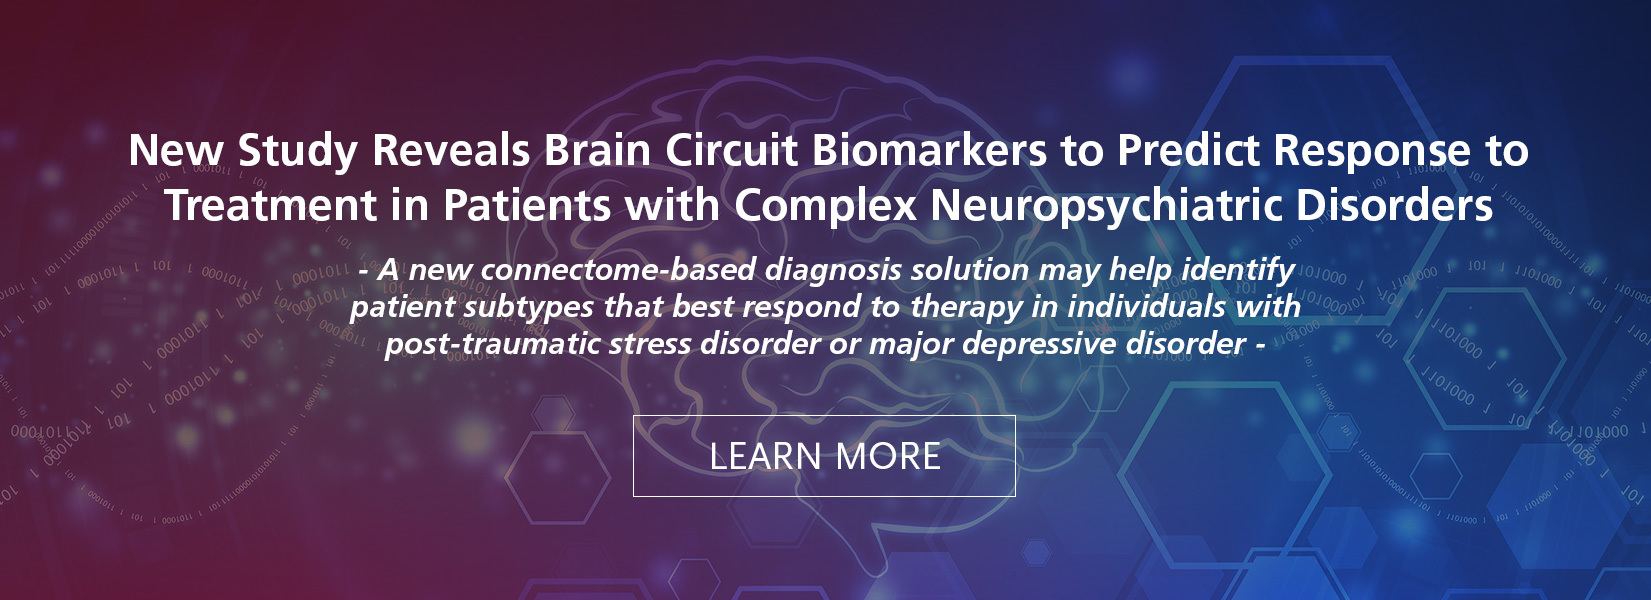 New Study Reveals Brain Circuit Biomarkers to Predict Response to Treatment in Patients with Complex Neuropsychiatric Disorders